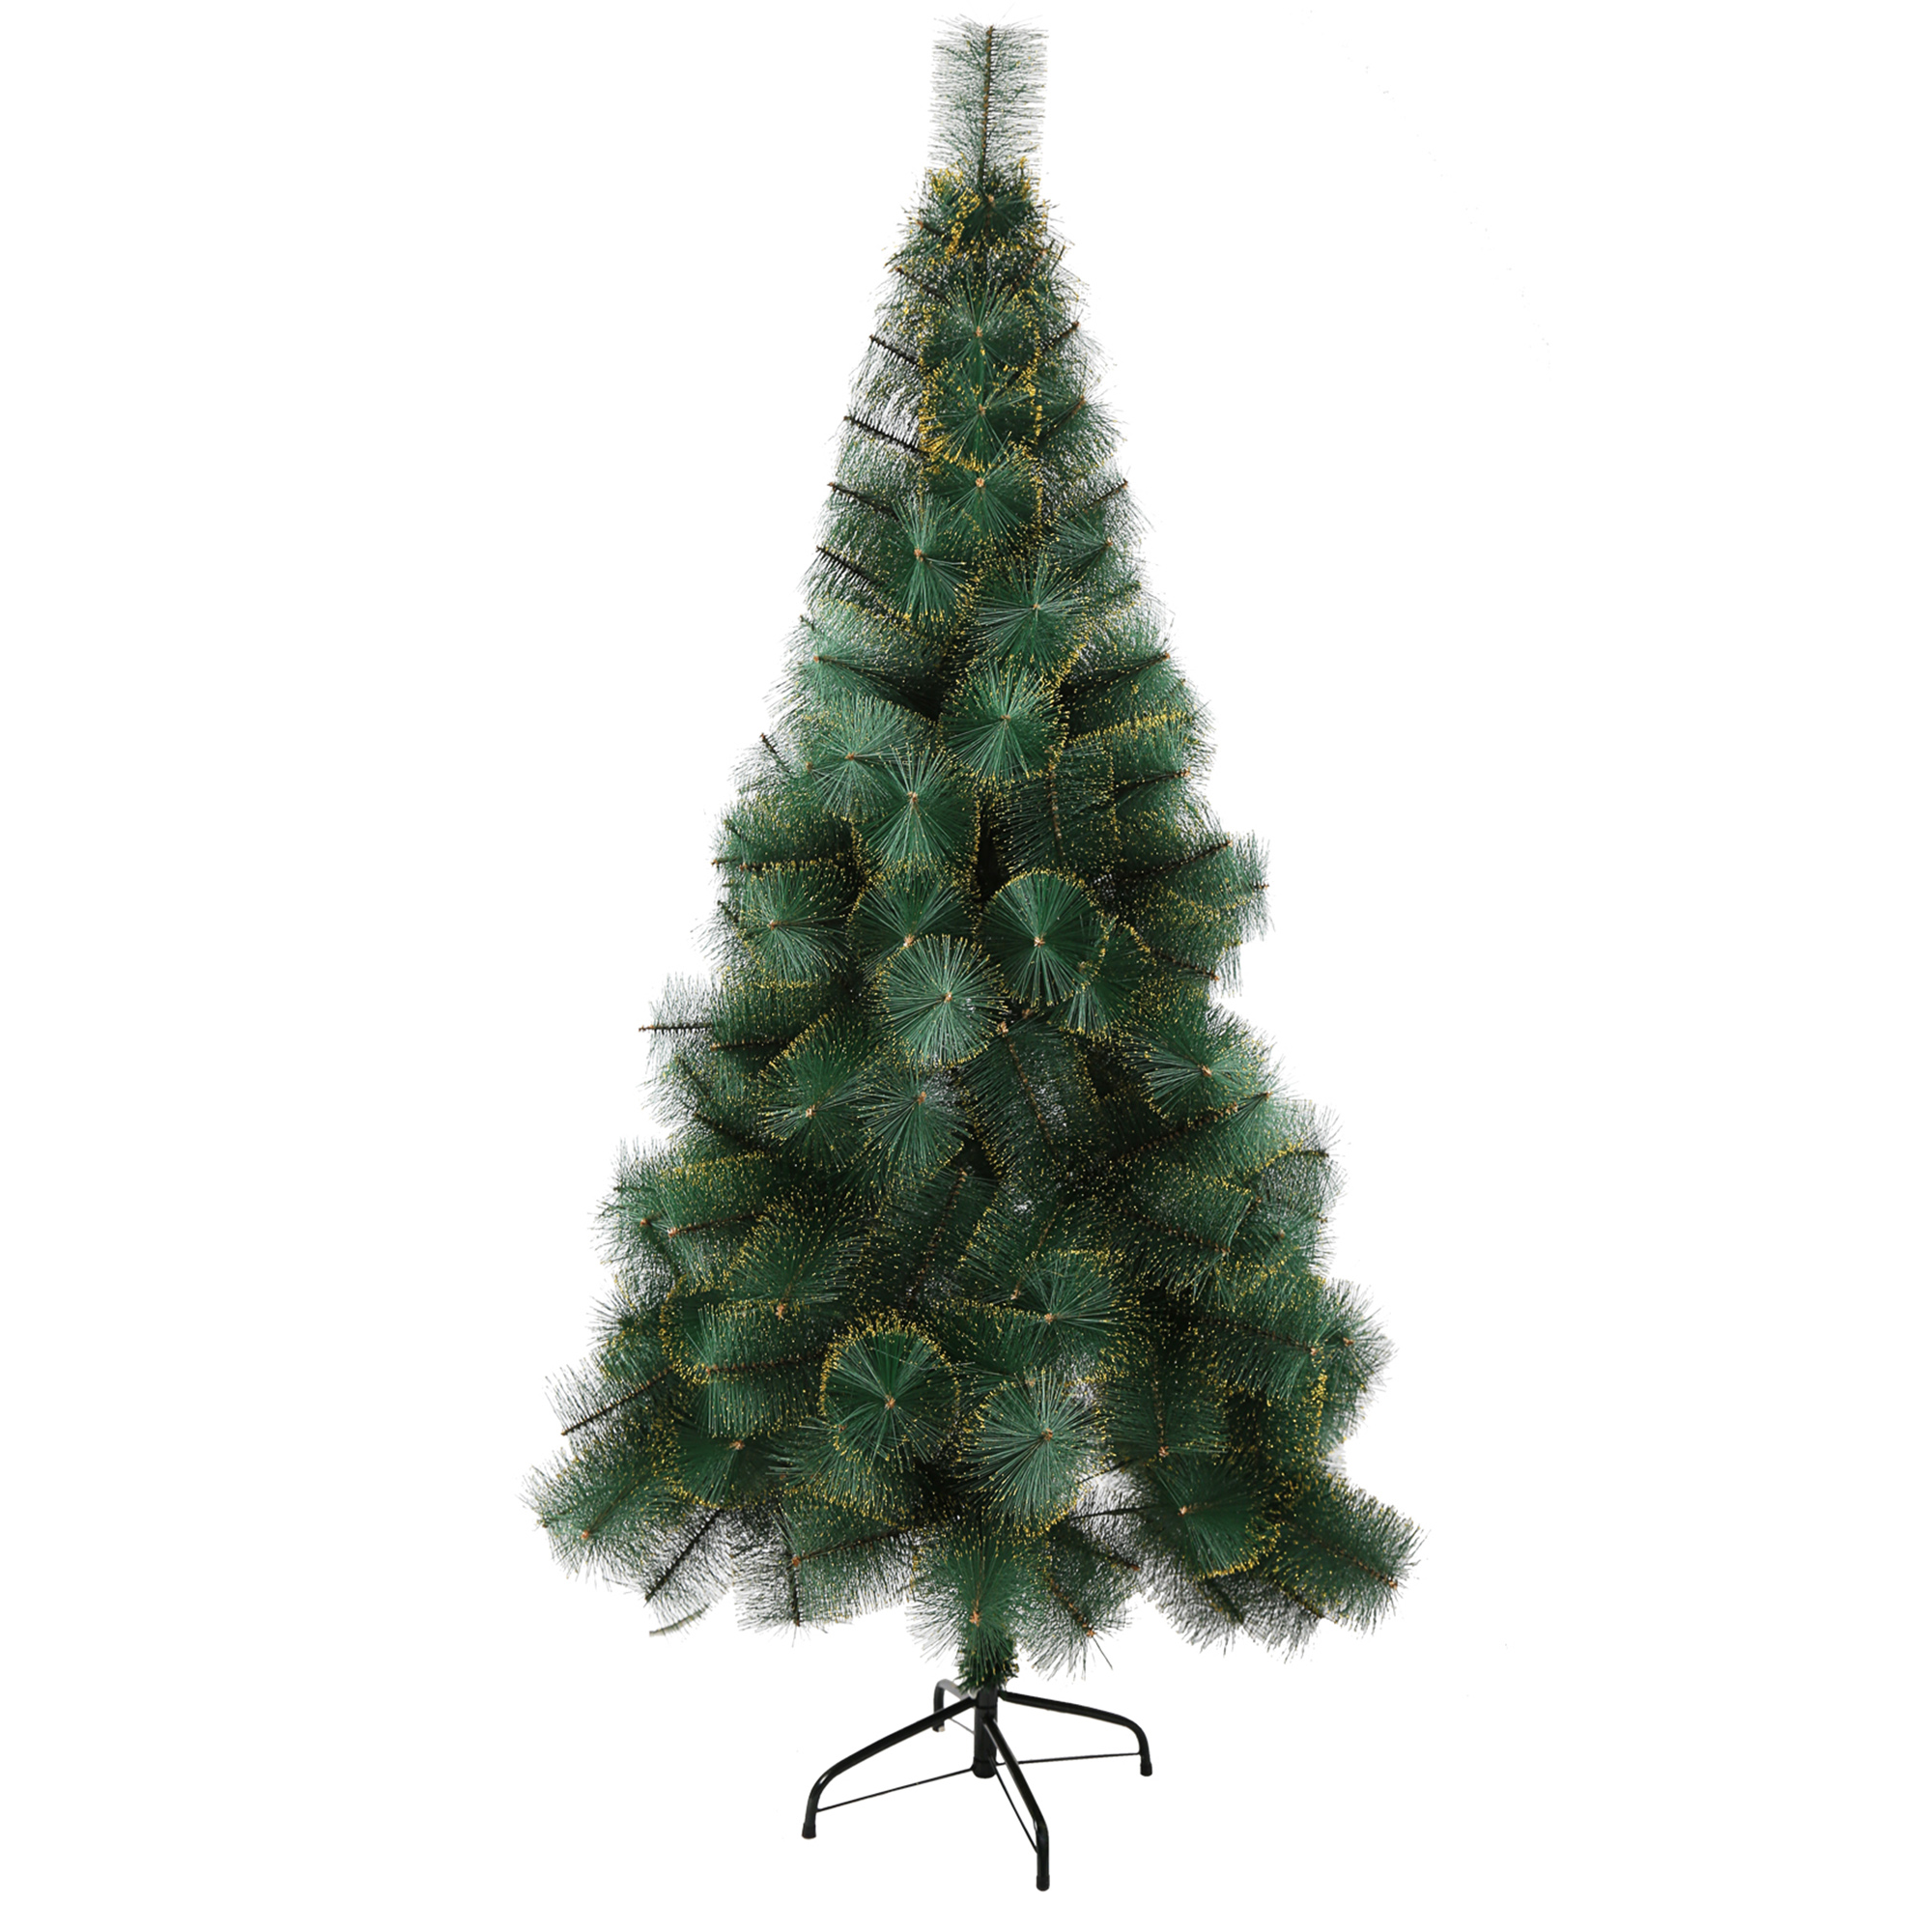 Artificial Christmas Tree Branches.Karmas Product 6 Ft Artificial Christmas Tree Needle 212 Tips Pet Branches With Gold Glitter Metal Tree Stand And Xmas Decorations